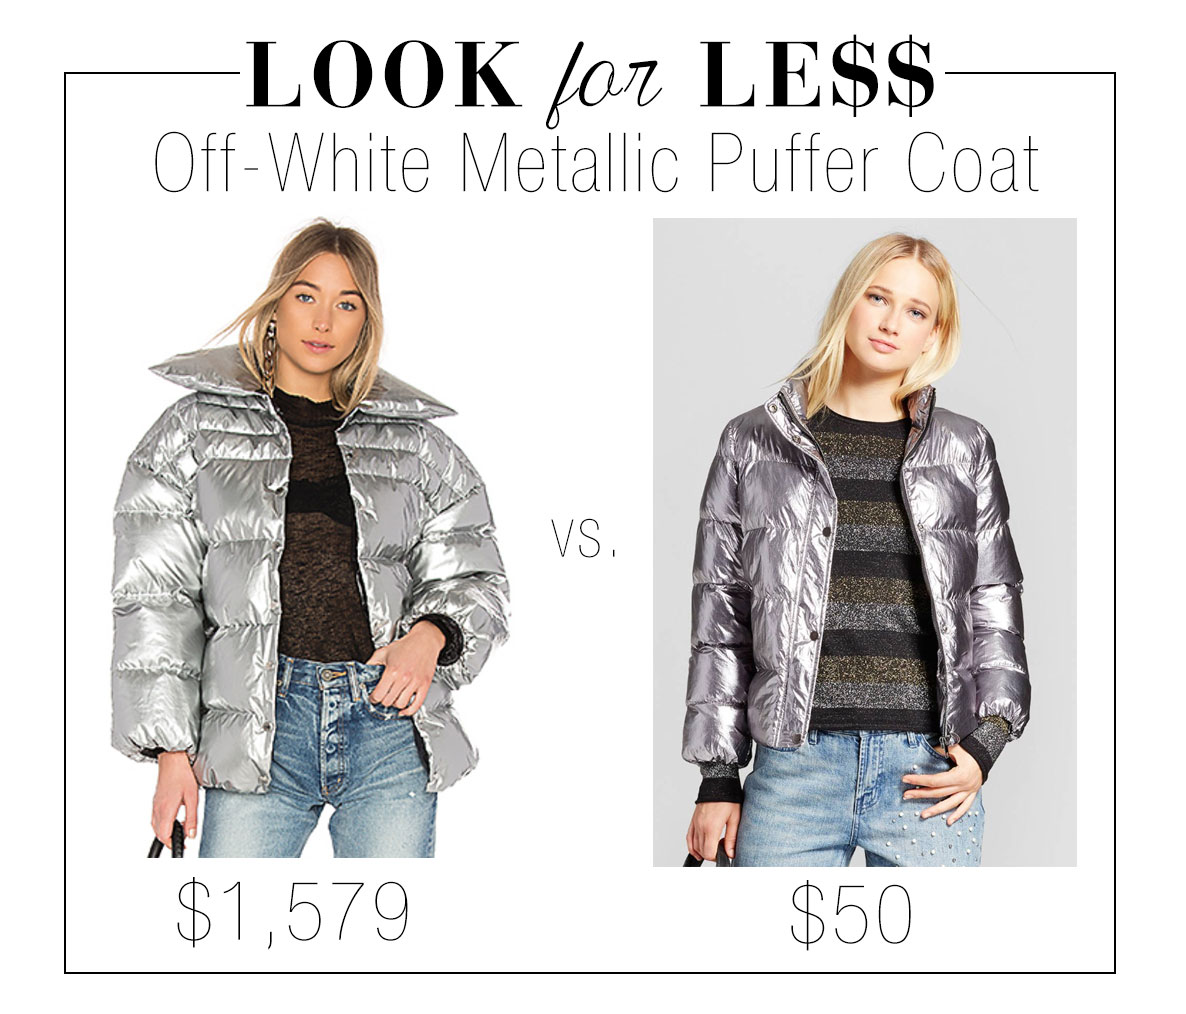 Get the look of Off-White's silver metallic puffer coat for less.